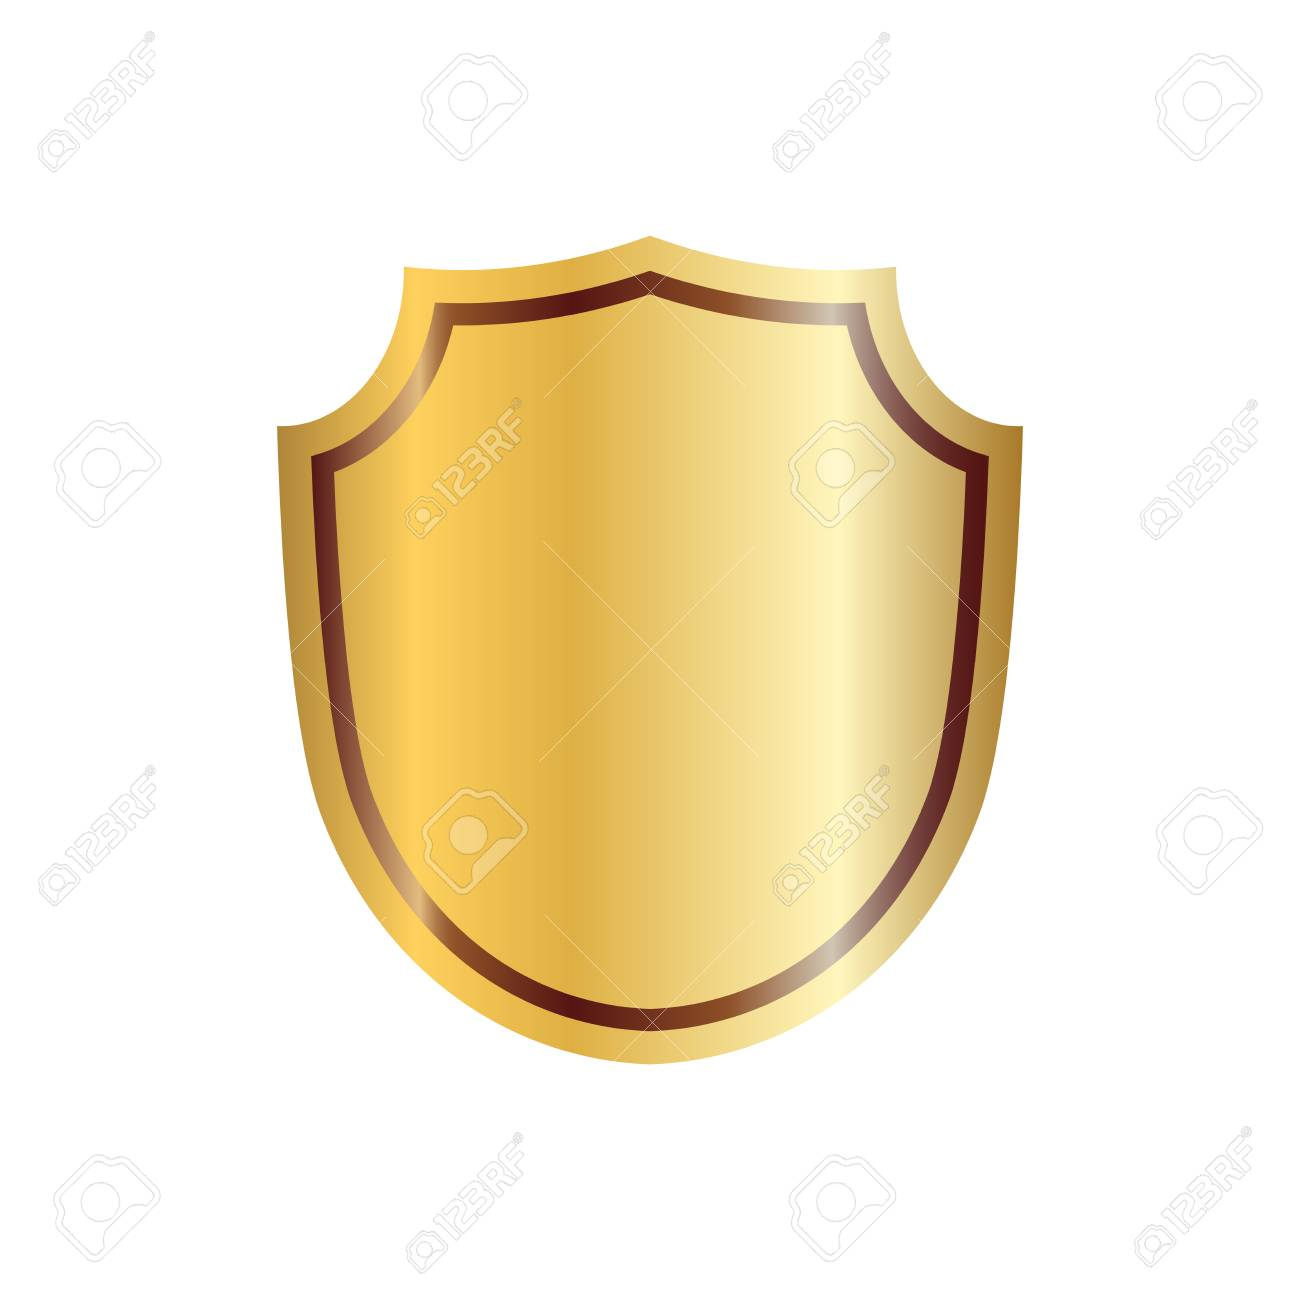 Gold shield shape icon. 3D golden emblem sign isolated on white...